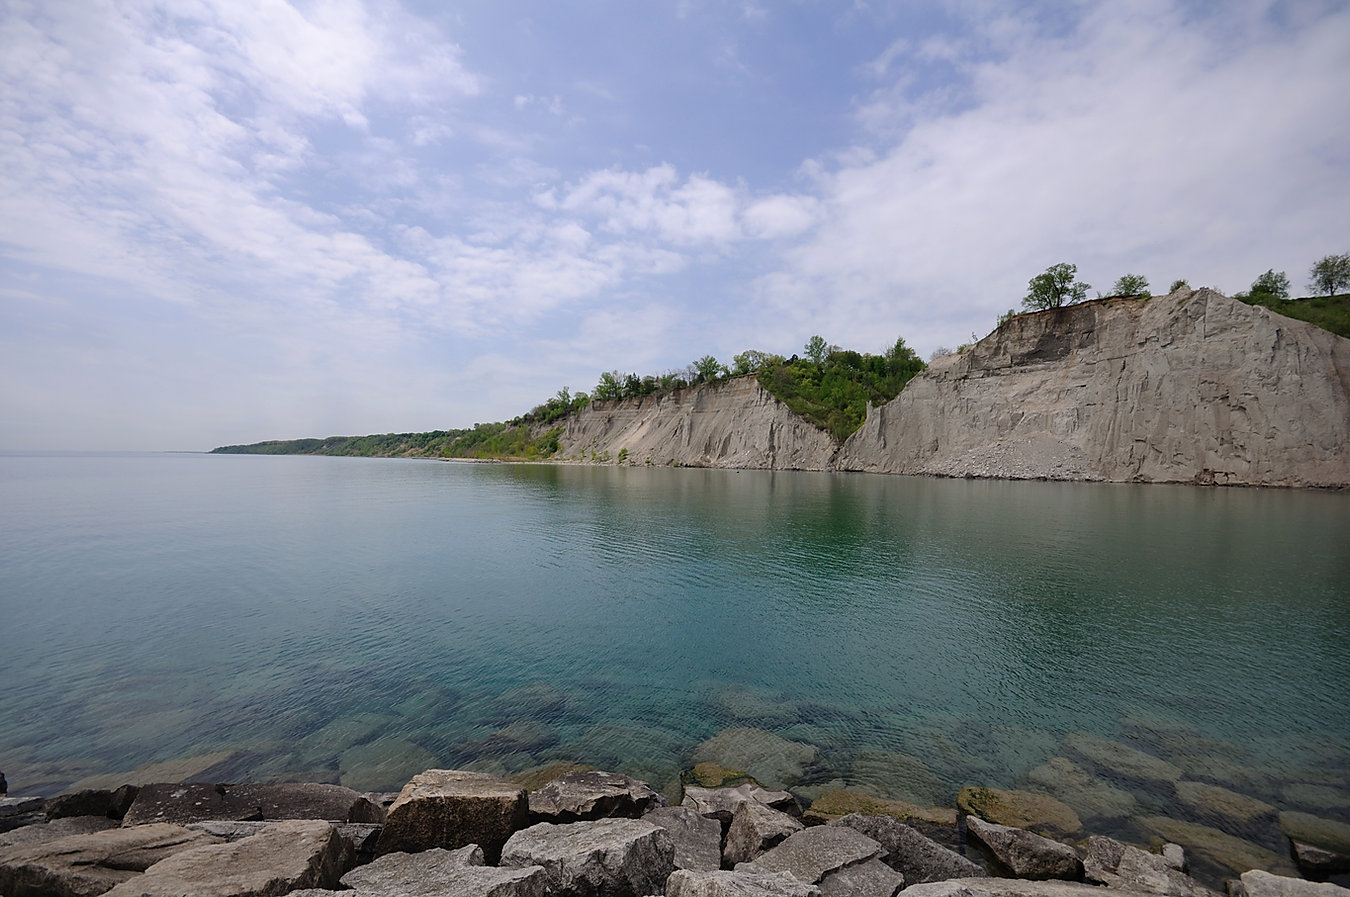 Toronto_-_ON_-_Scarborough_Bluffs.jpg